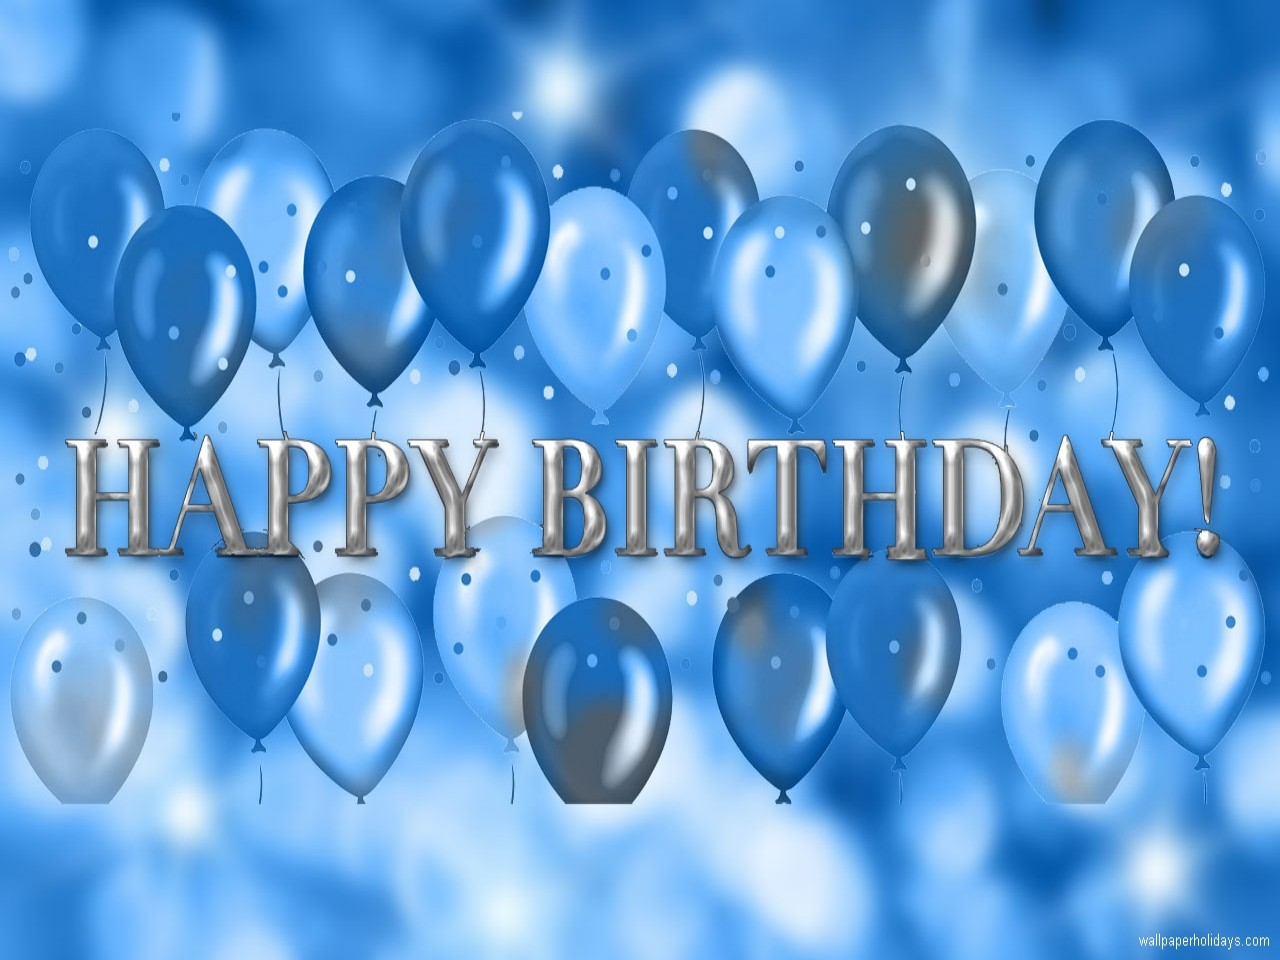 birthday banner images hd ; birthday-banners-HD